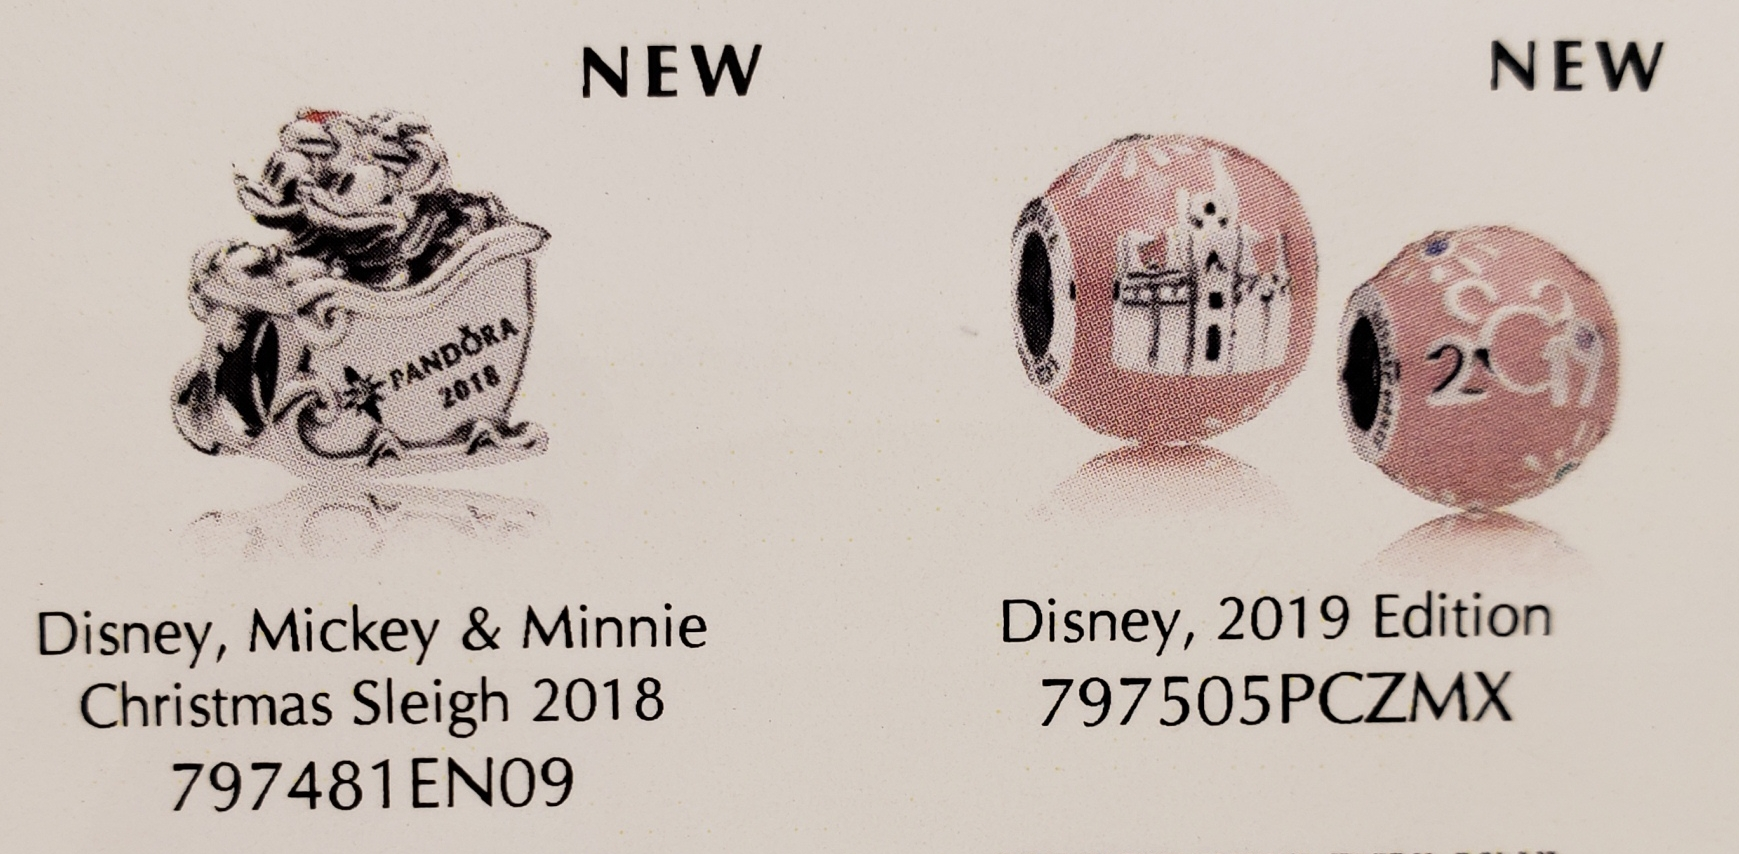 disney park exclusive pandora charms